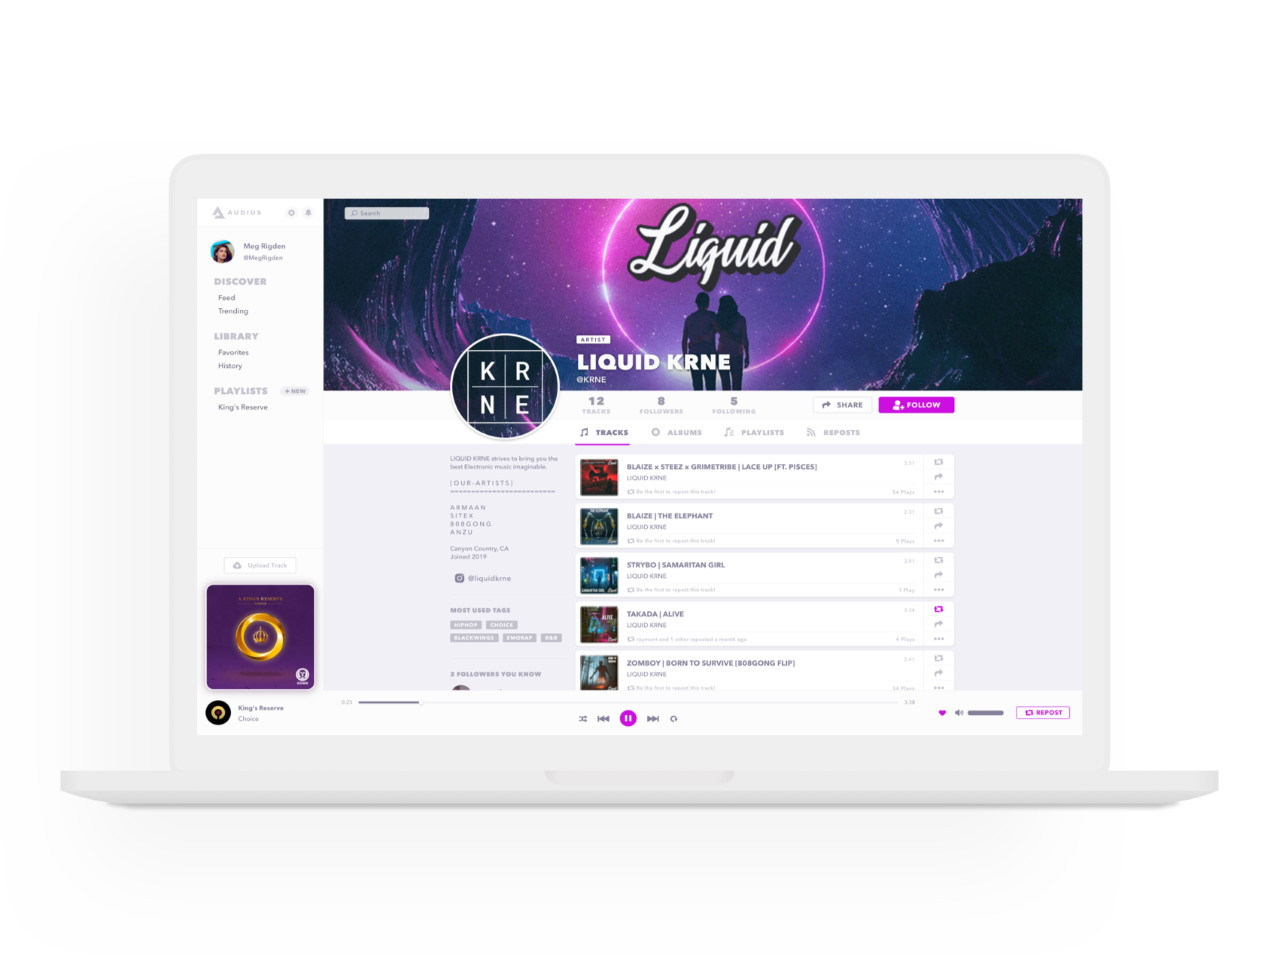 audius music streaming & hosting platform